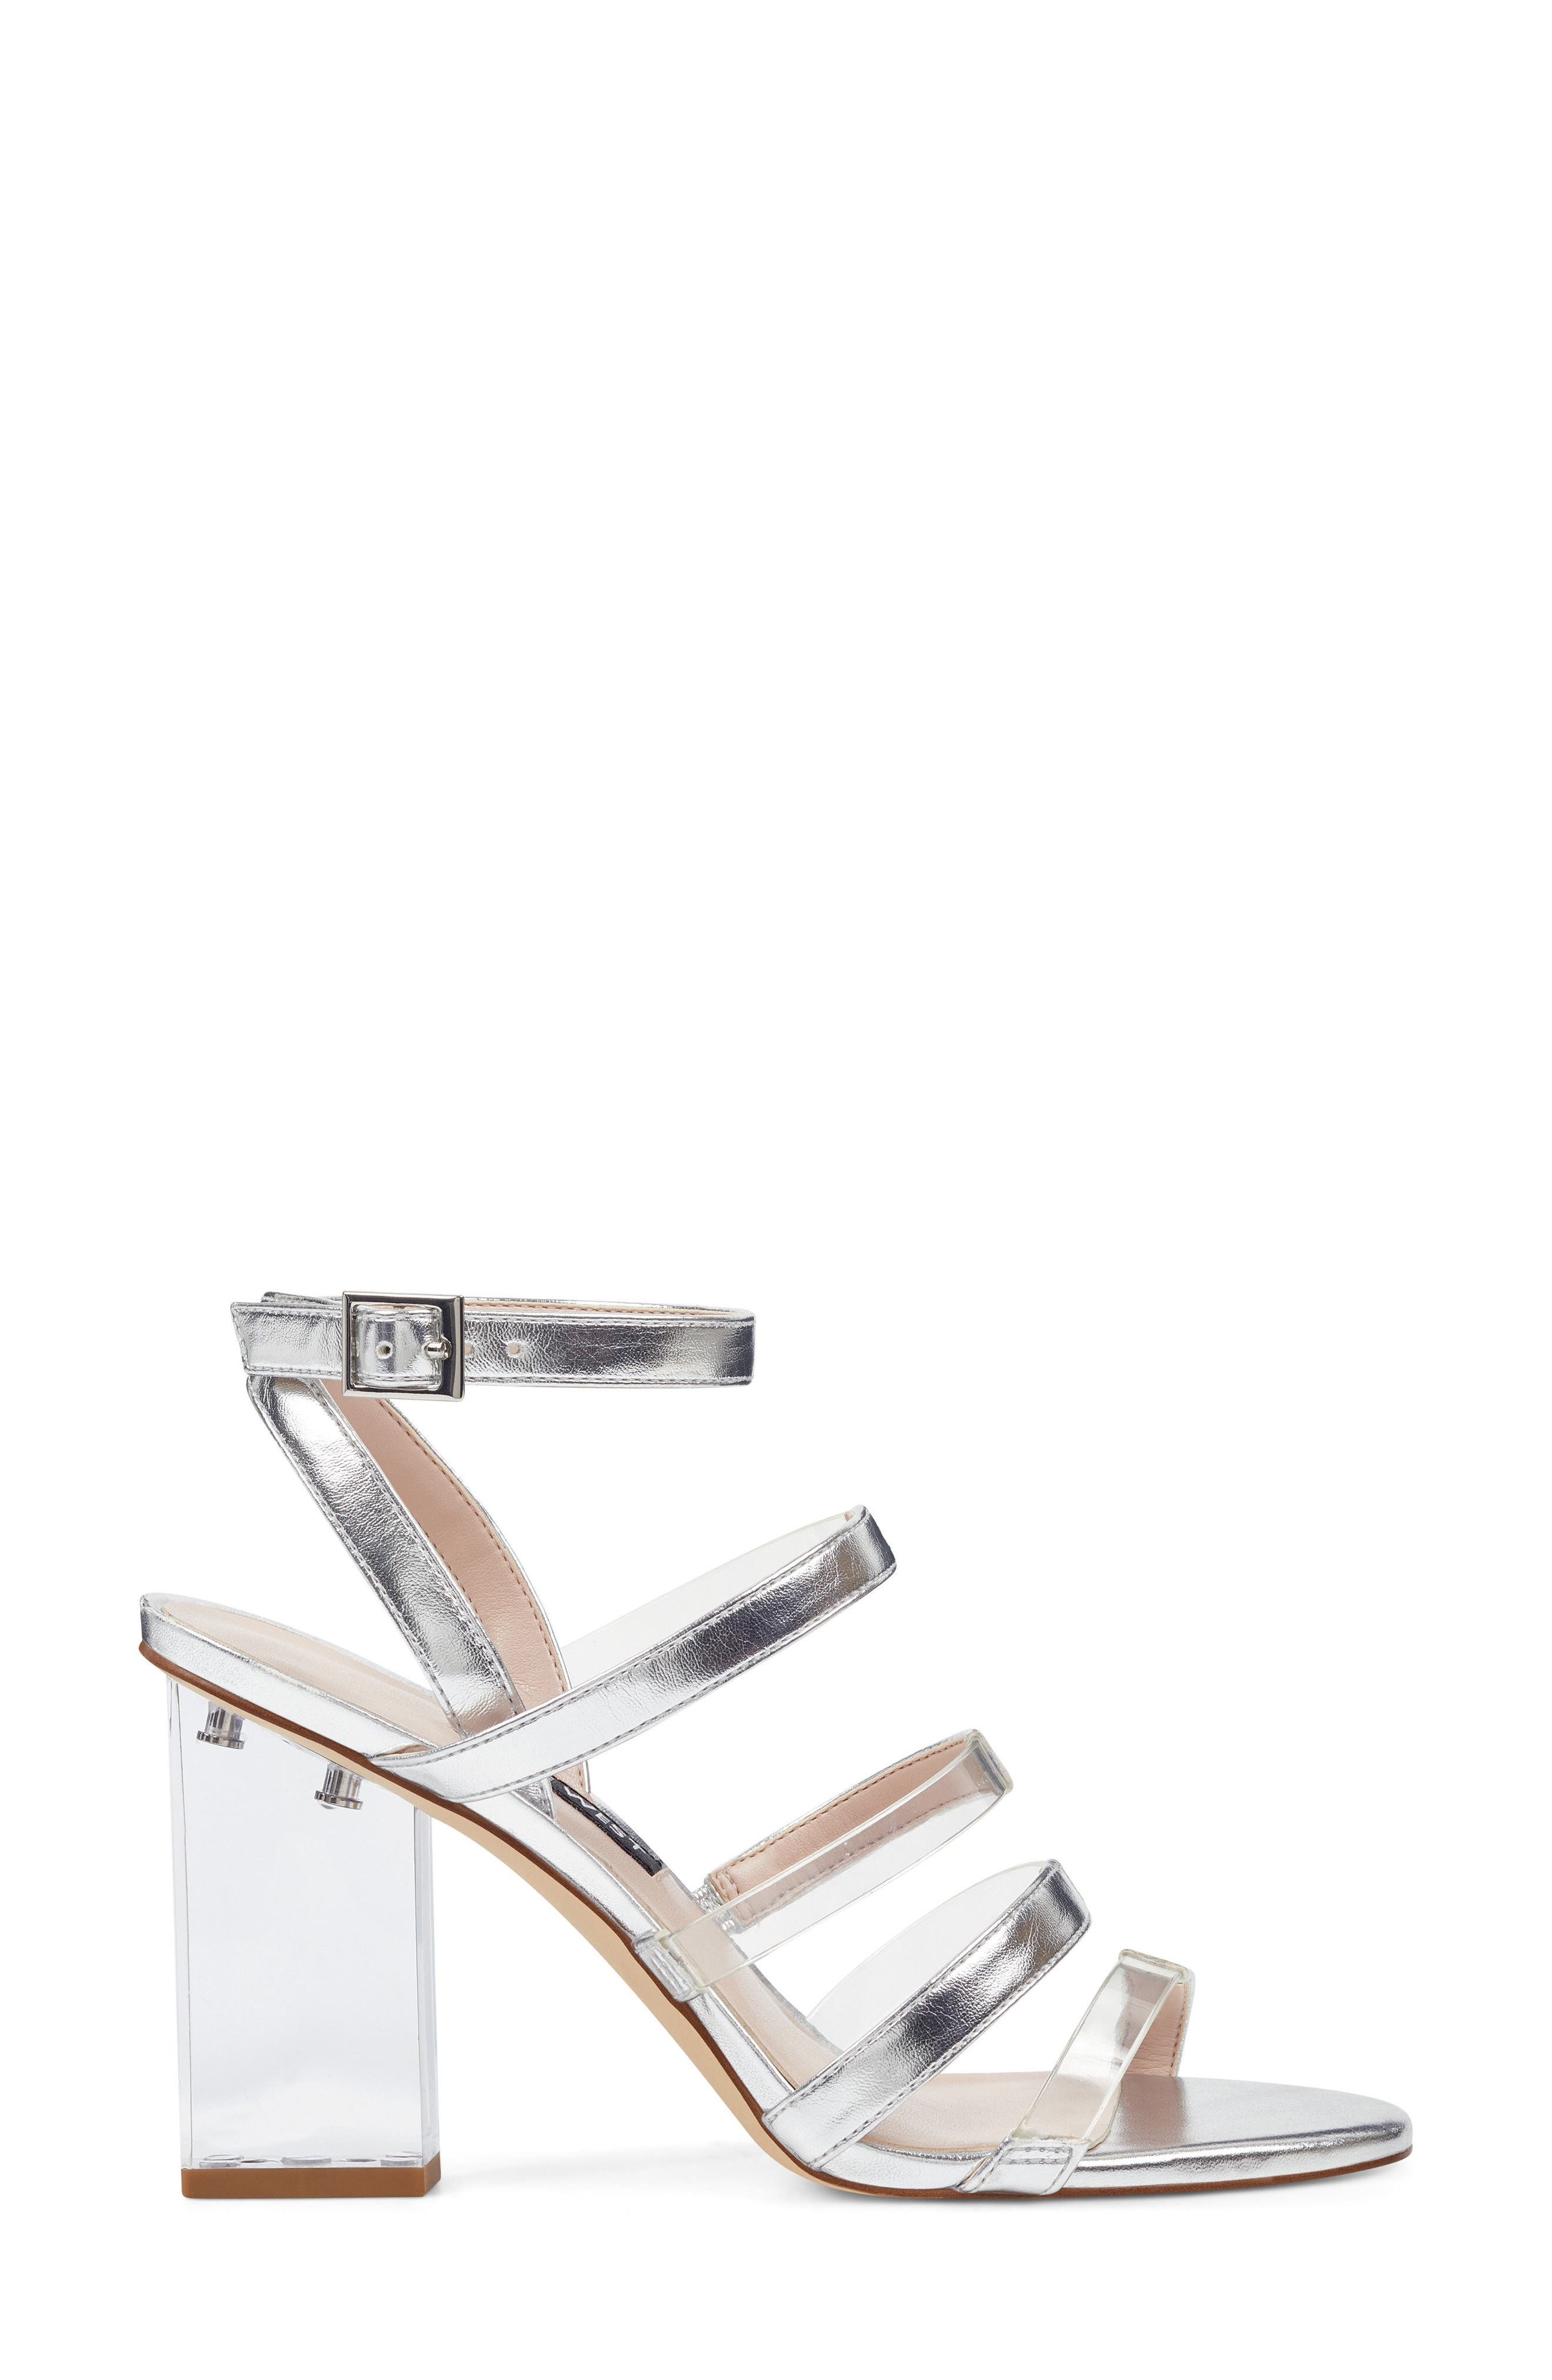 Fazzani Cage Sandal,                             Alternate thumbnail 3, color,                             CLEAR/ SILVER FAUX LEATHER